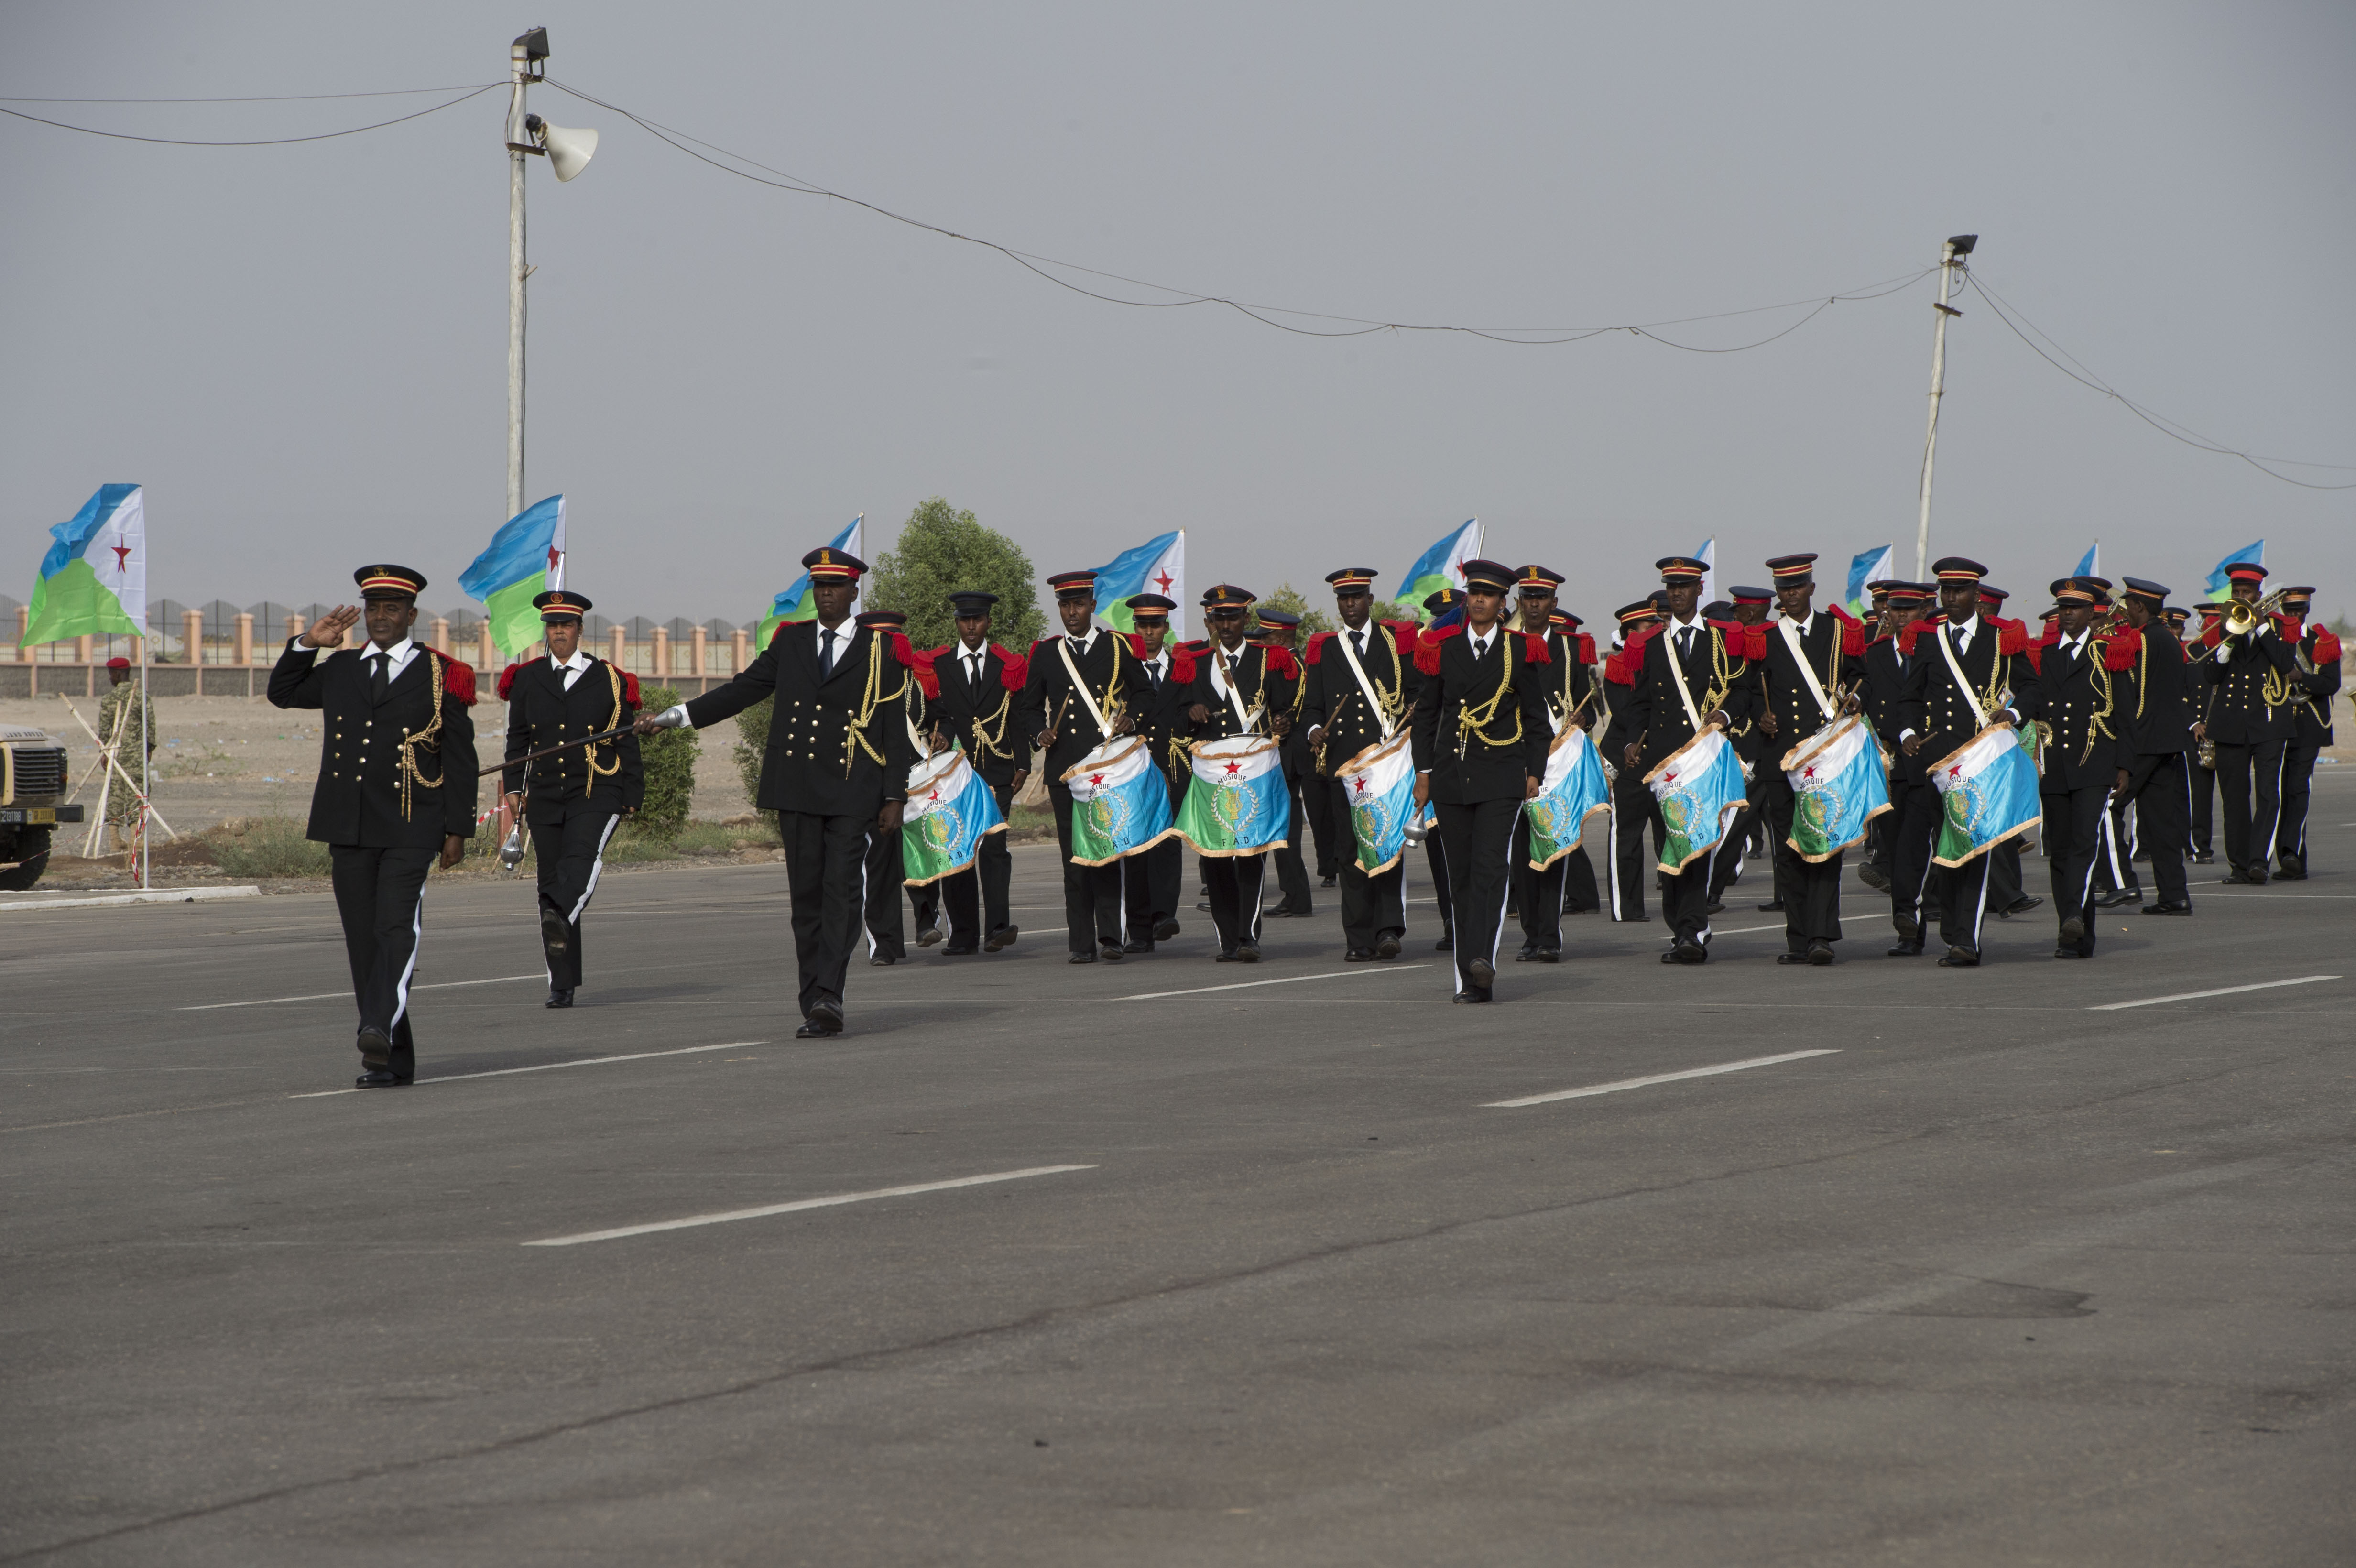 A Djiboutian band marches down the street during the Djibouti Independence Day parade June 27, 2016, at Djibouti. The band was the first of many participants in the parade. (U.S. Air Force photo by Staff Sgt. Eric Summers Jr.)